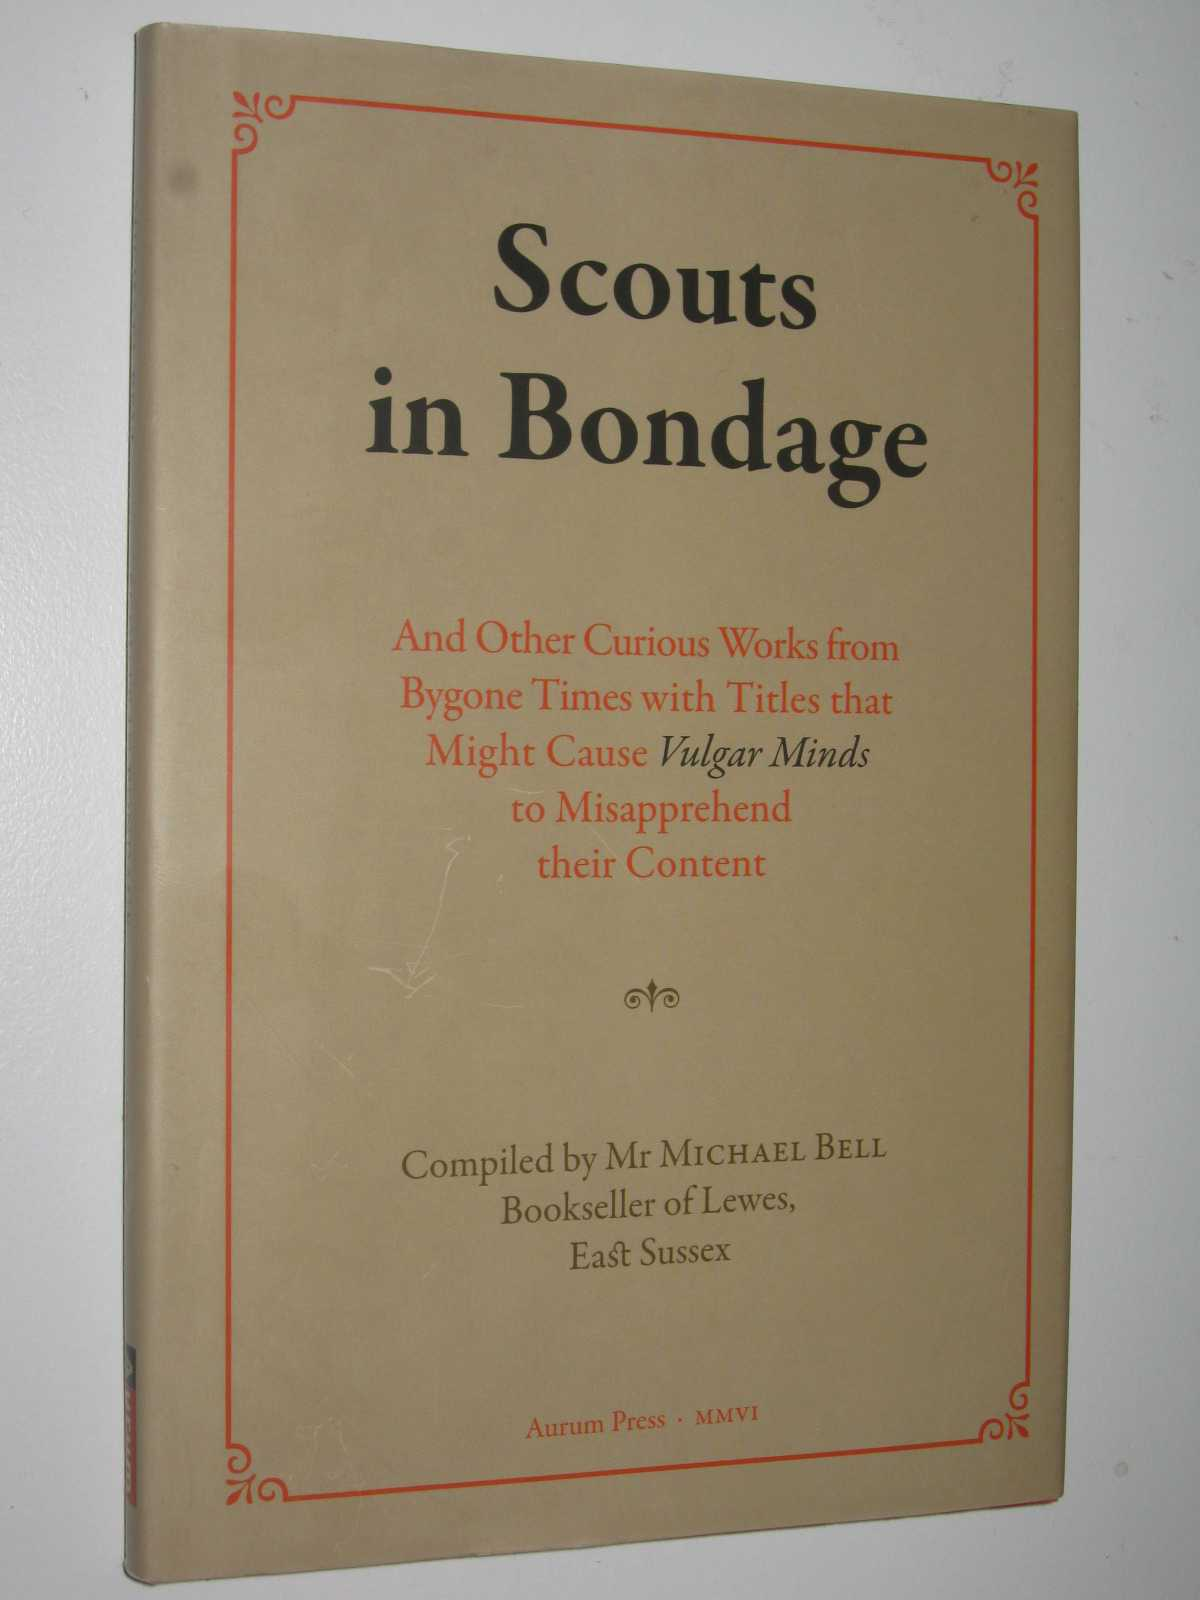 Scouts in Bondage : And Other Curious Works from Bygone Times with Titles That Might Cause Vulgar Minds to Misapprehend Their Content, Bell,Michael